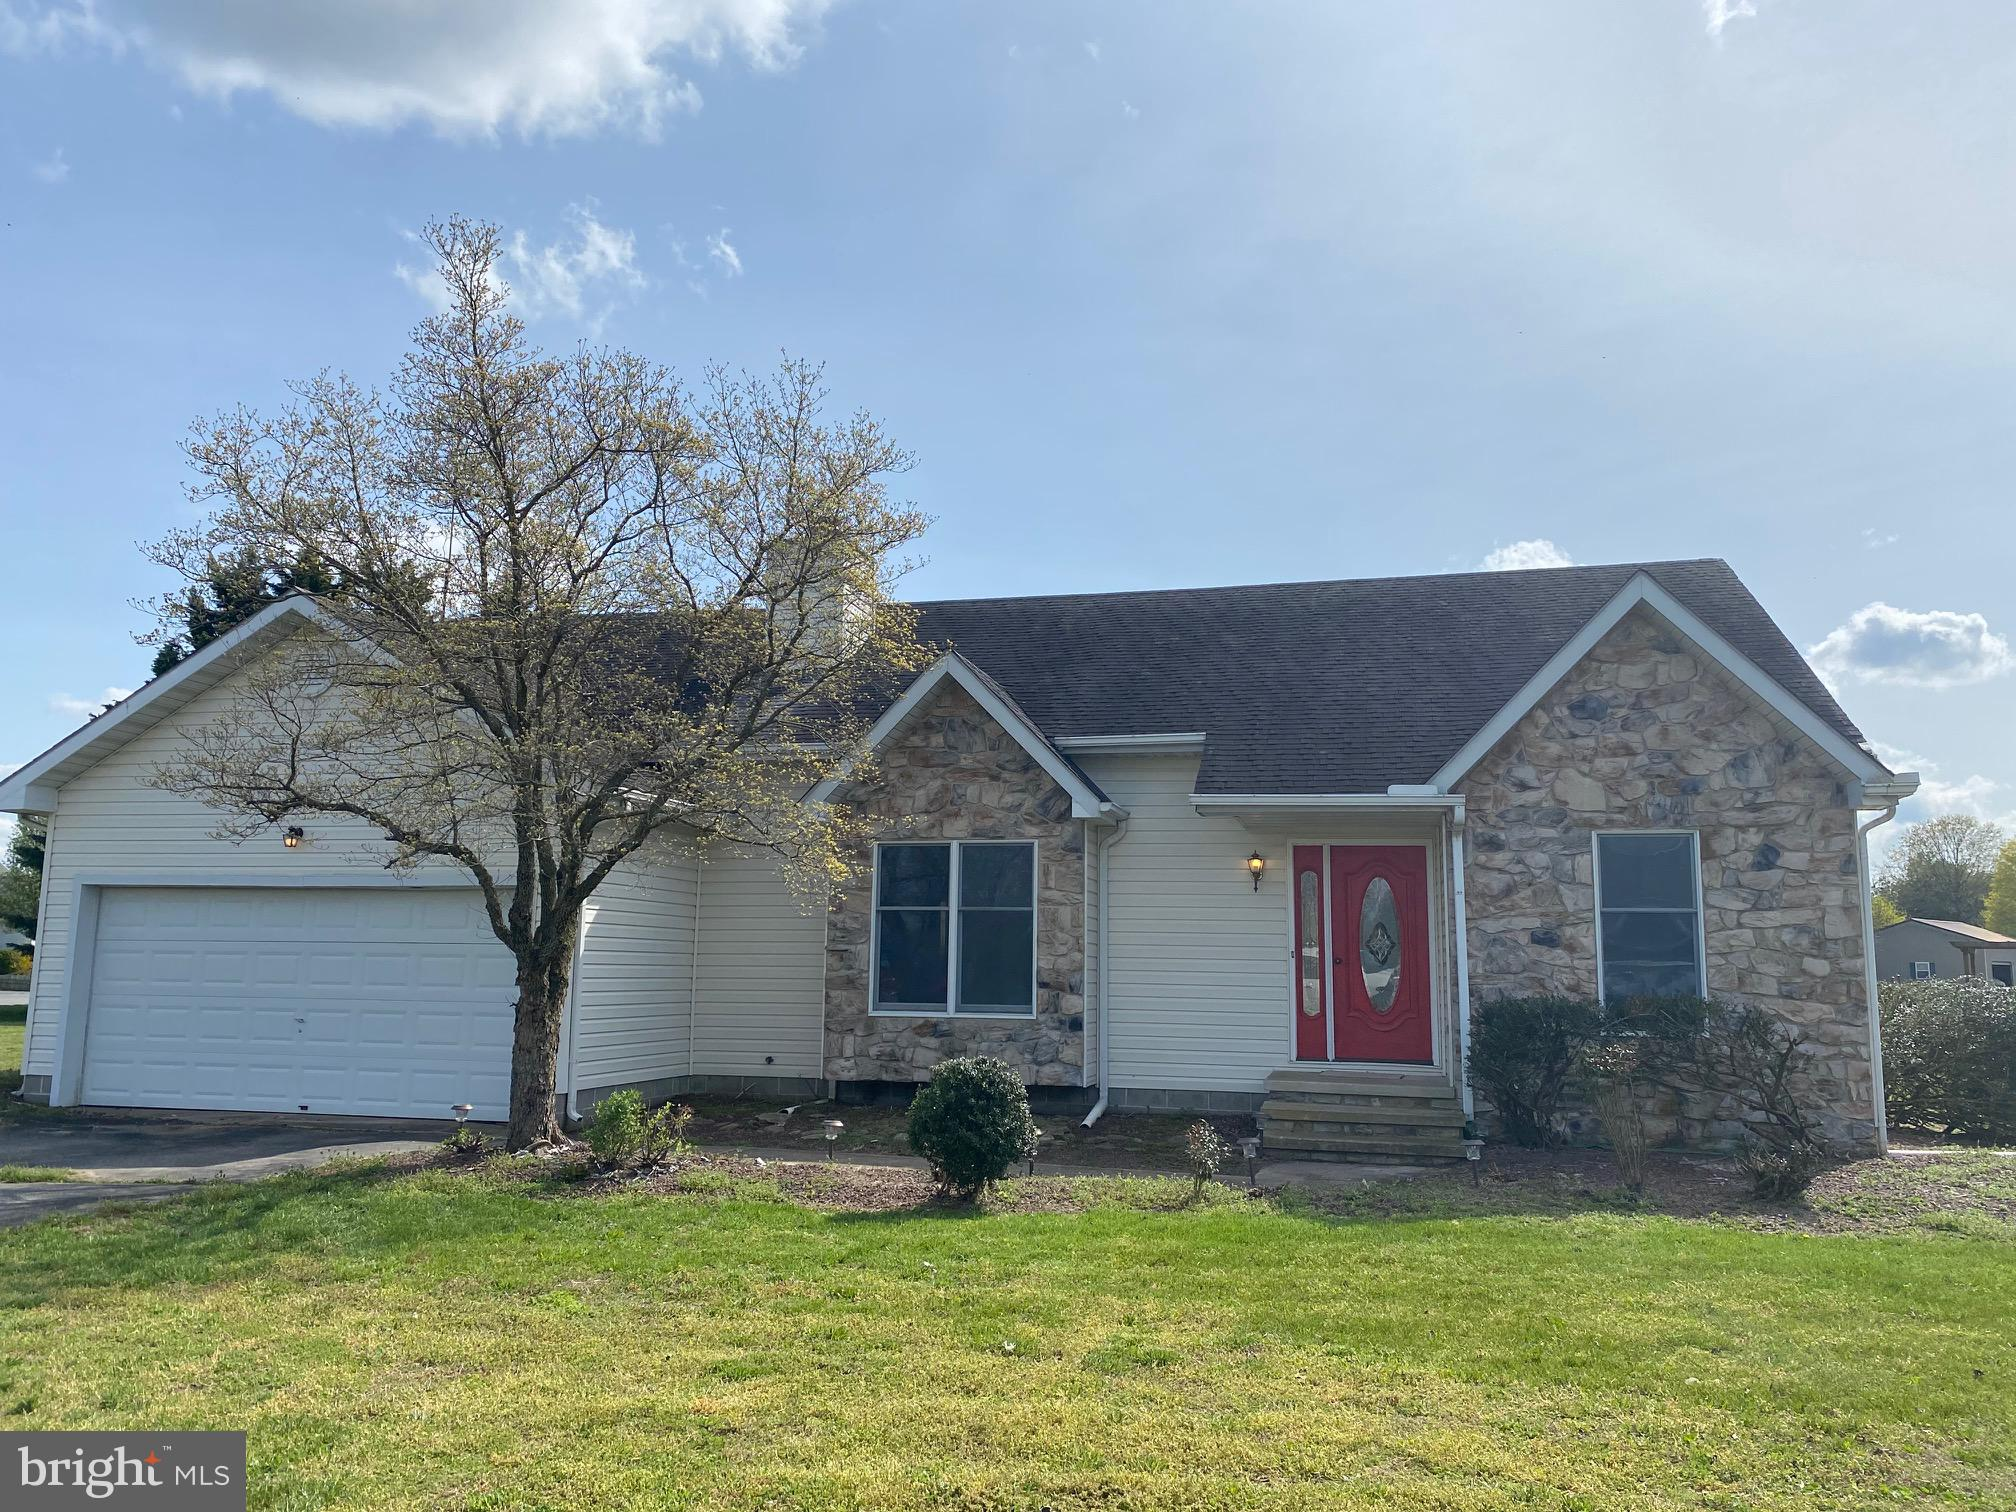 Remodeled & in like new condition! Nice 3 bedroom 2 bath contemporary rancher with split open floor plan! Fresh paint, appliances, flooring, & much more! Located on a corner lot in a quiet rural neighborhood! Large open dining room & den with refinished rear deck! Must See!